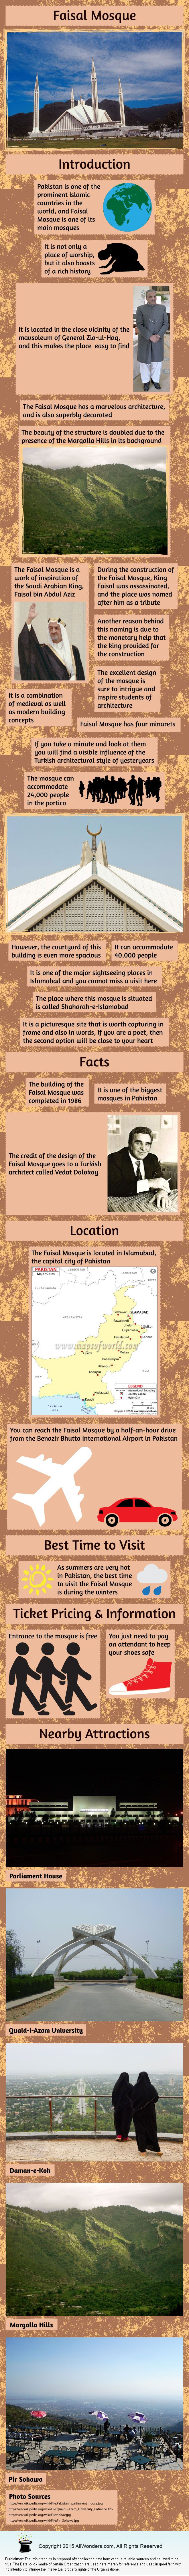 Faisal Mosque Infographic showing facts and information about the Mosque in Islamabad. Know about its Location, Best time to visit, Nearby Attractions and more.